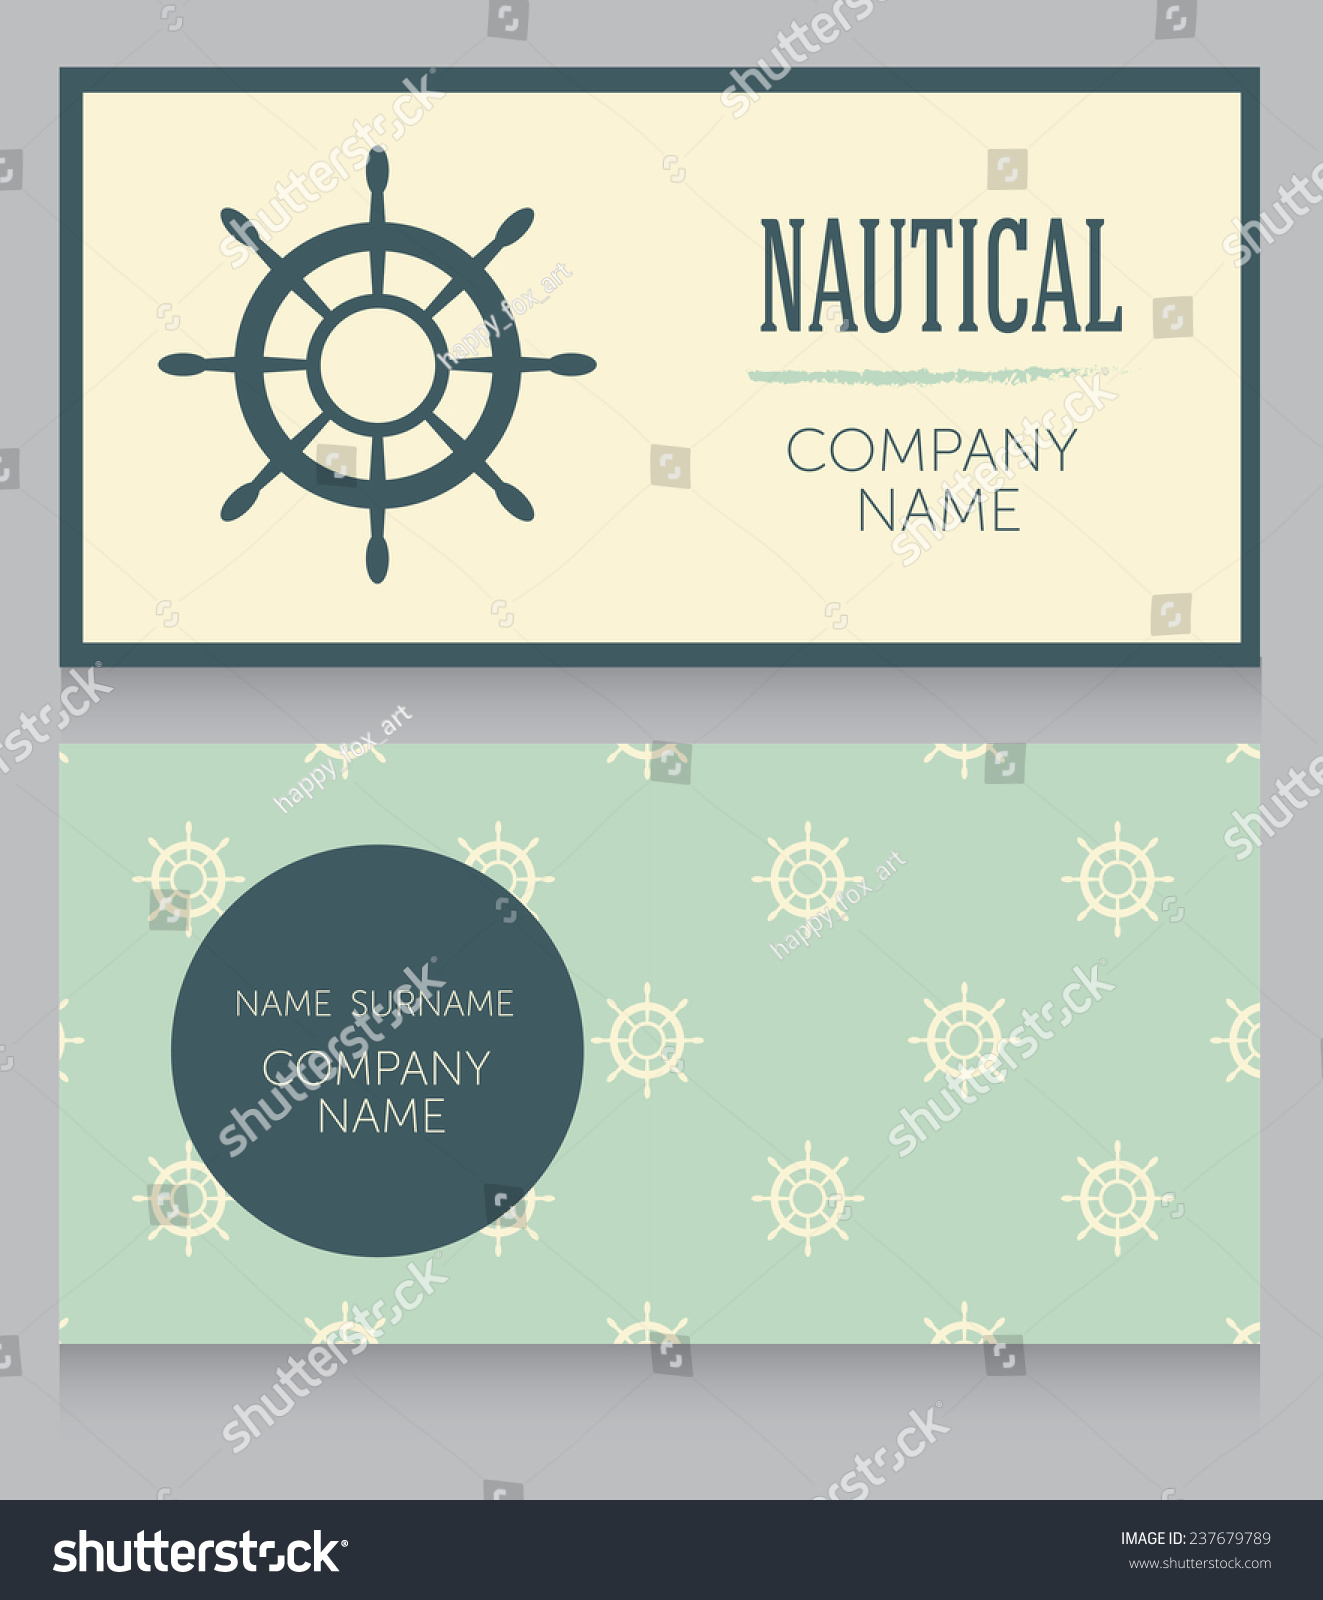 Fantastic Nautical Business Cards Gallery - Business Card Ideas ...